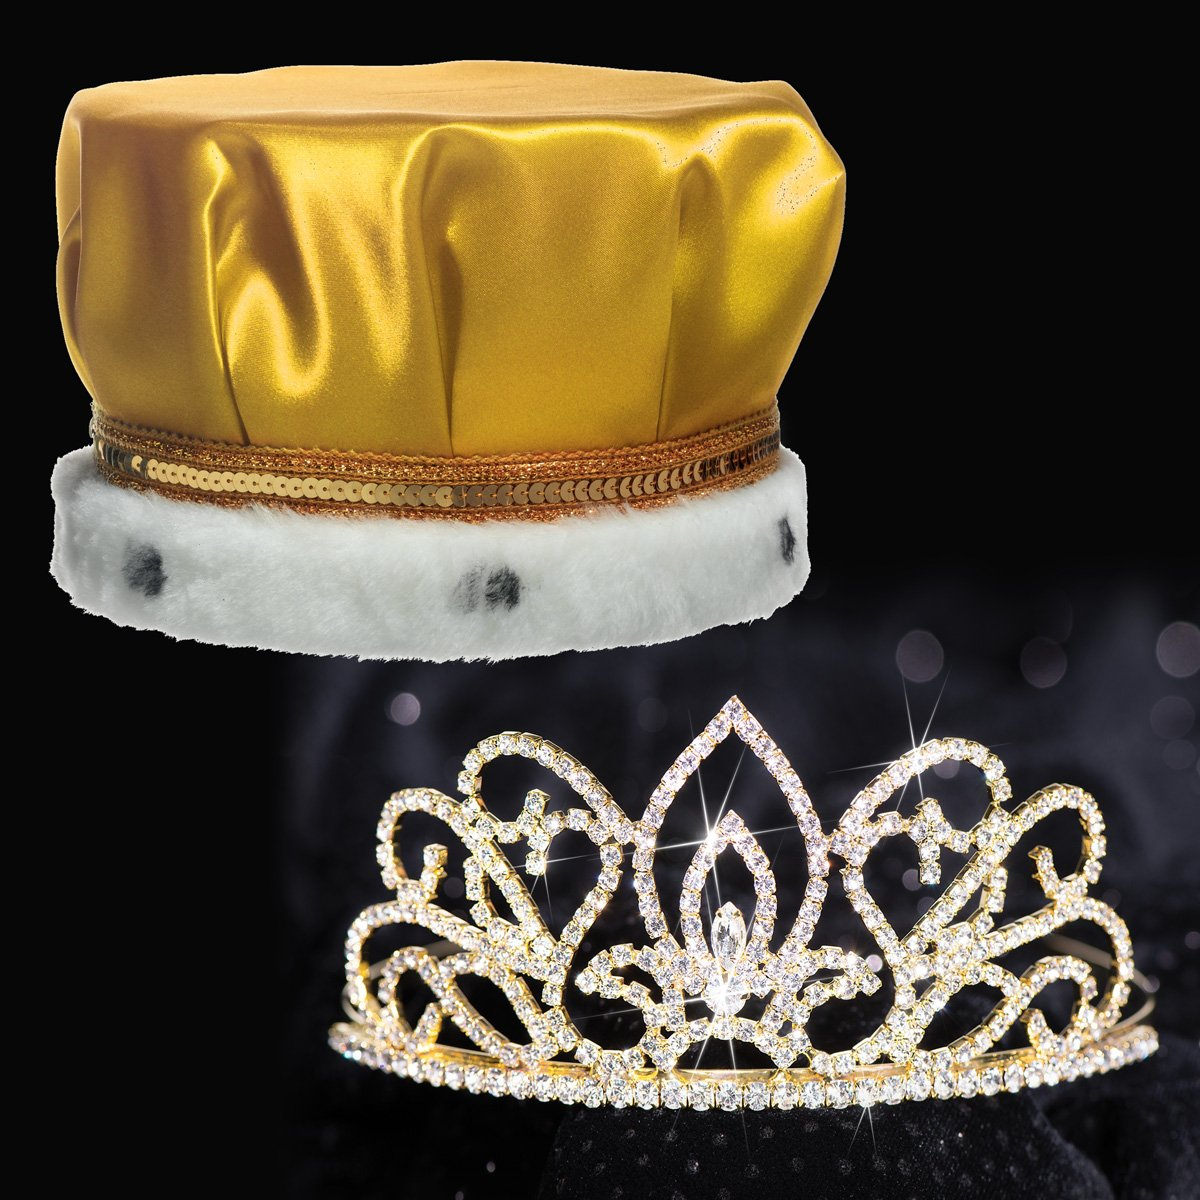 Deluxe Adele Royalty Set, 2 1/4 inch High Gold Adele Tiara and Gold Satin Crown with Gold Sequins, White Fur